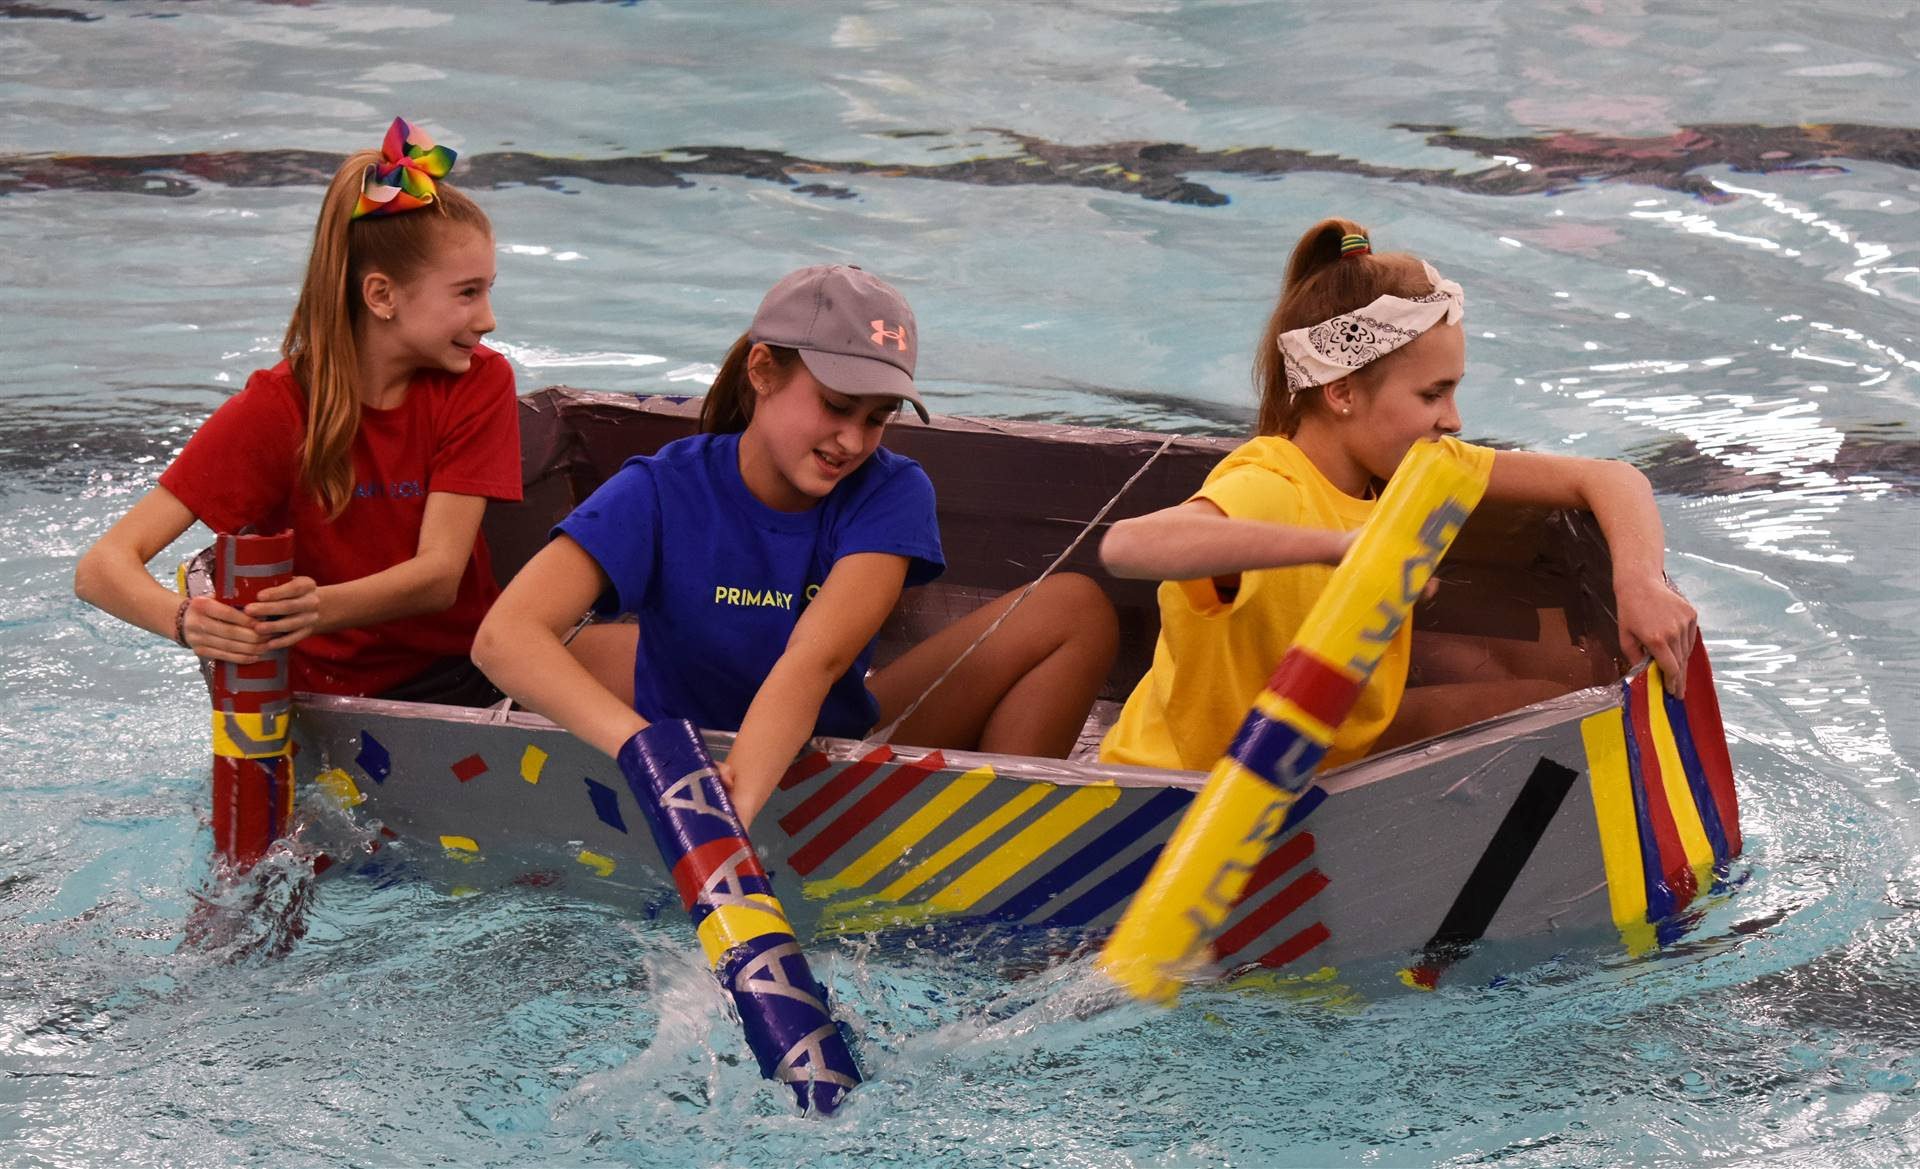 three students competing in cardboard boat races